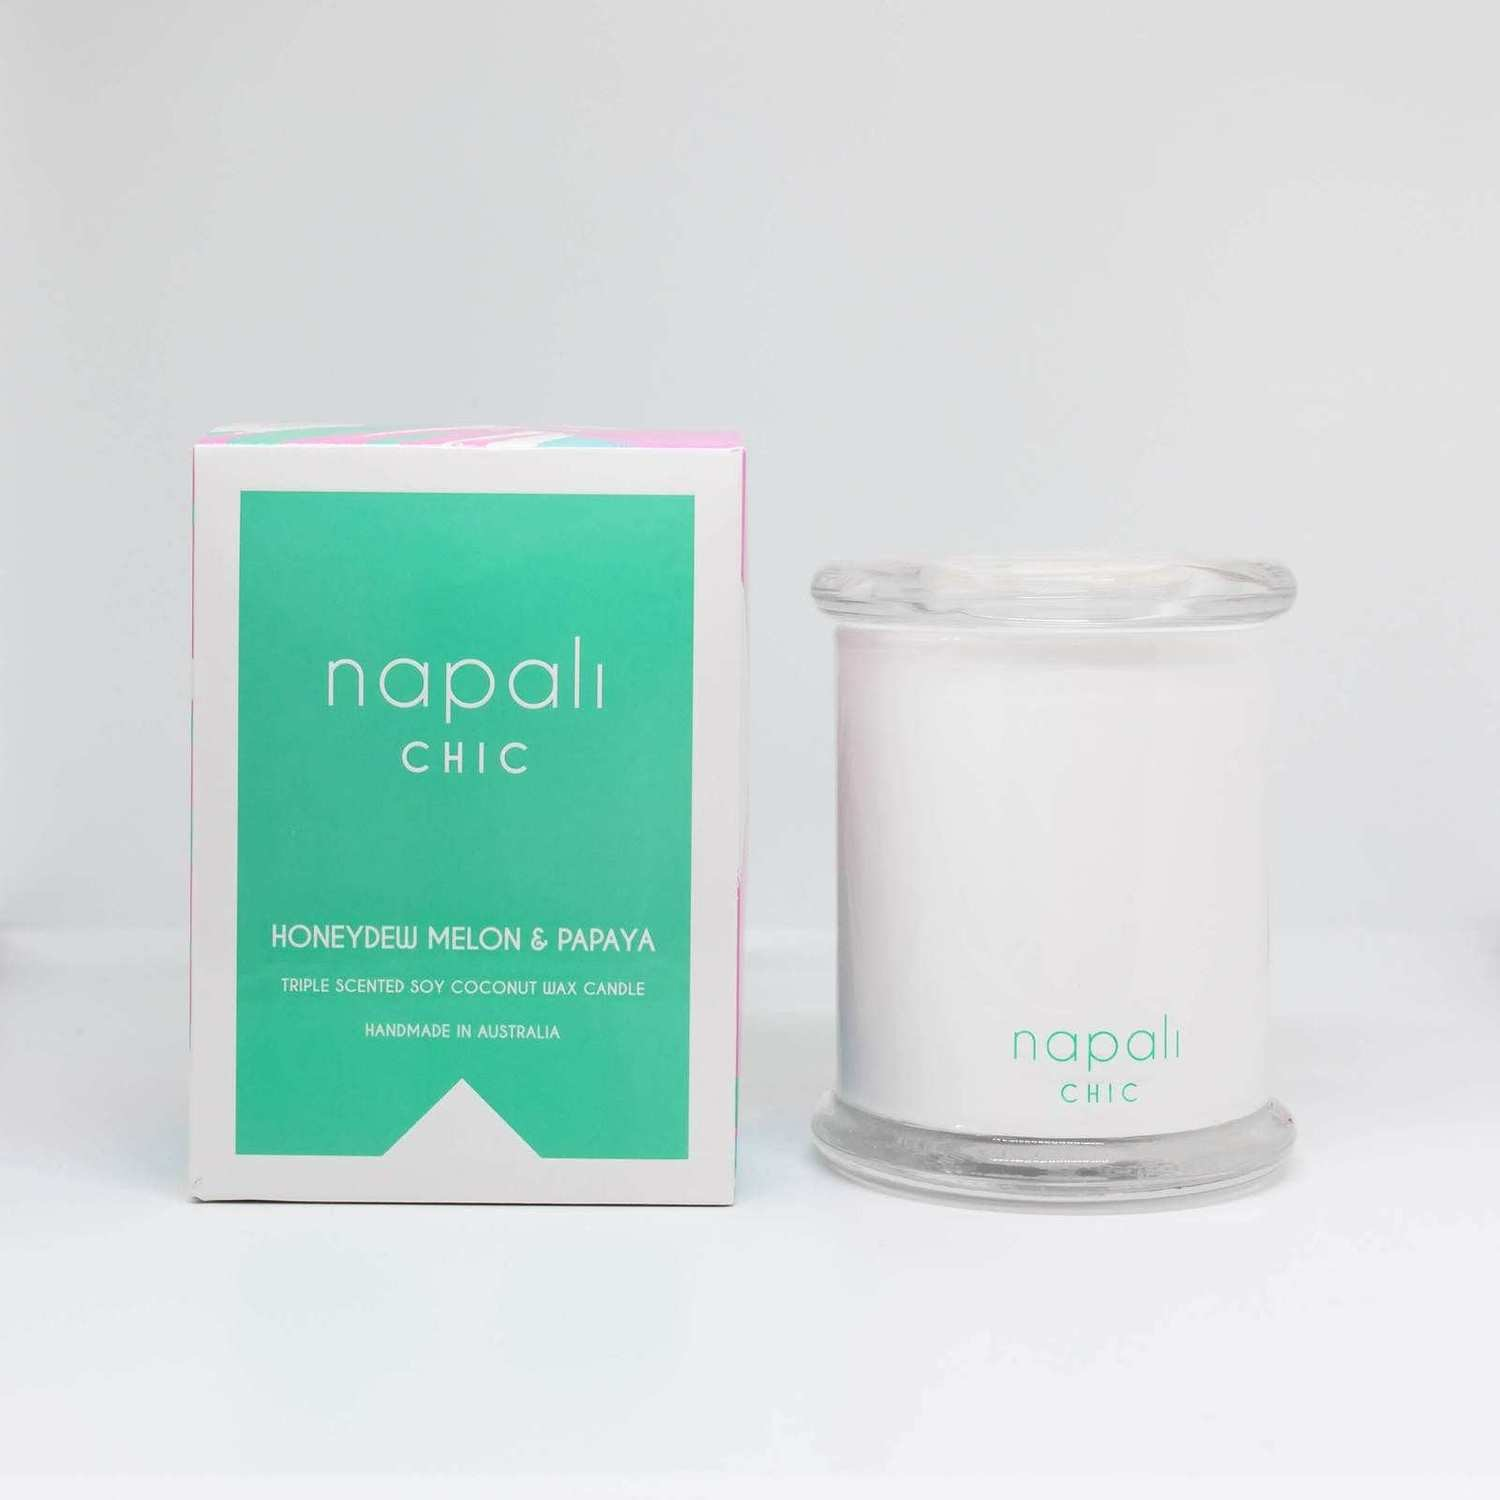 Napali Chic Candle 300g (Honeydew Melon & Papaya)